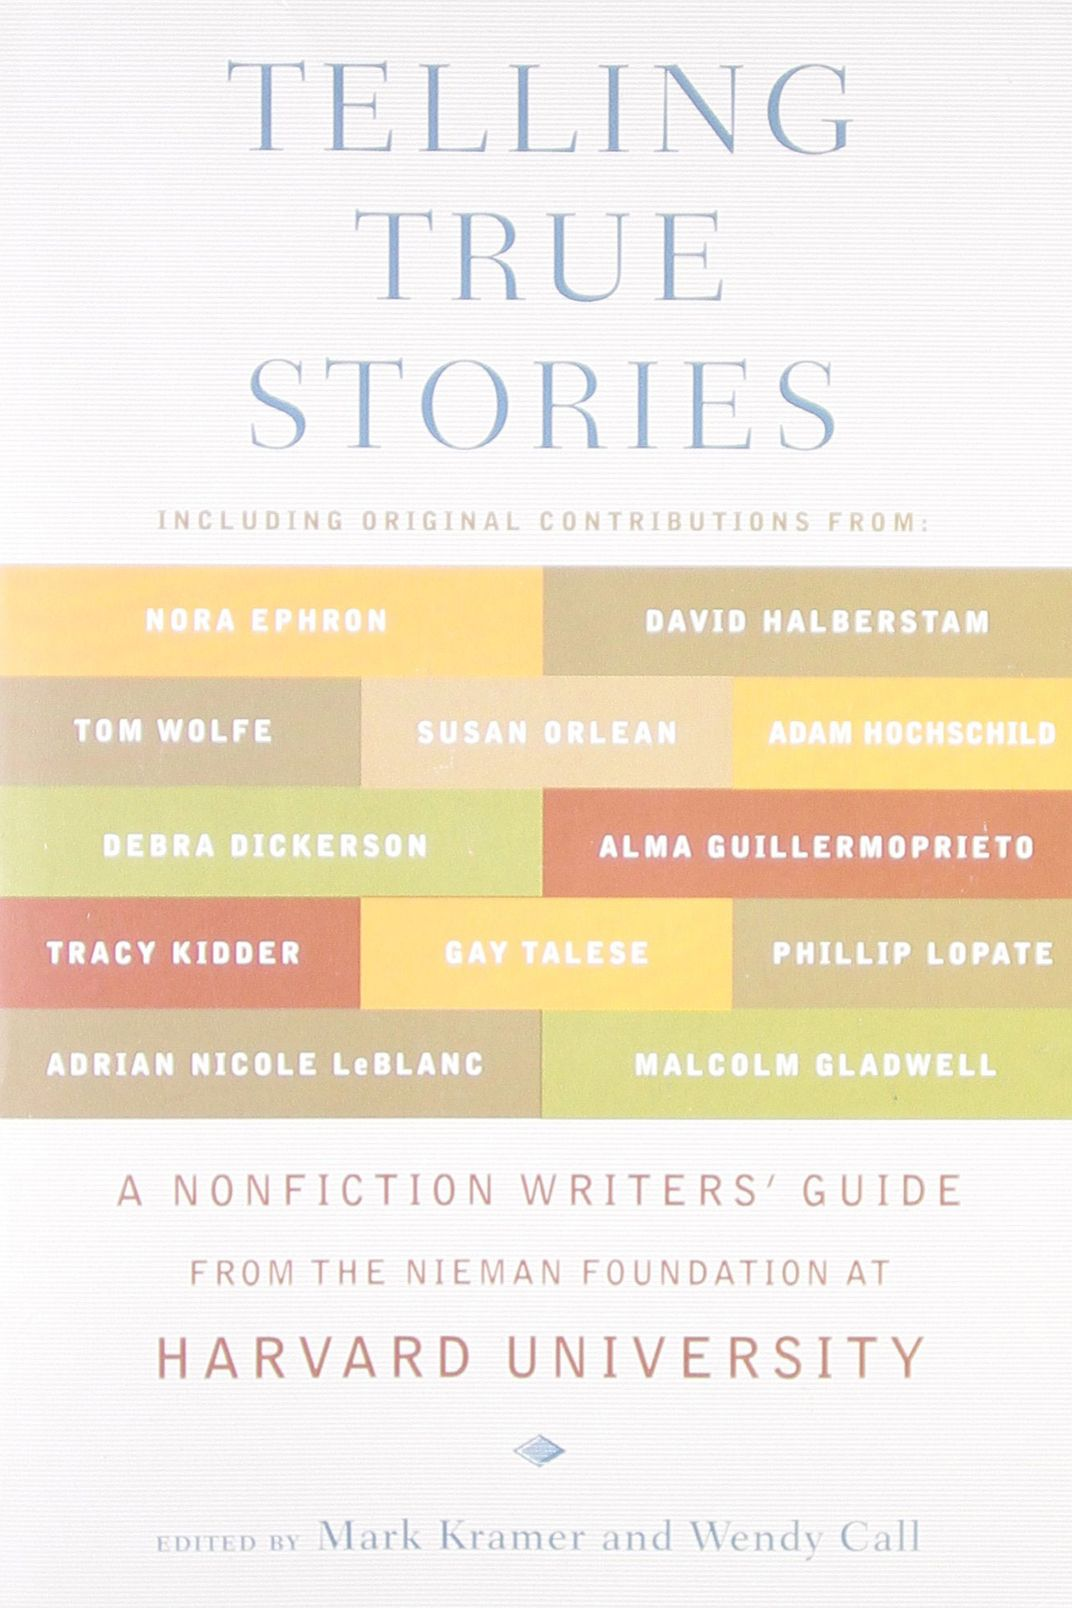 Telling True Stories:  A Nonfiction Writers' Guide from the Nieman Foundation at Harvard University edited by Mark Kramer and Wendy Call